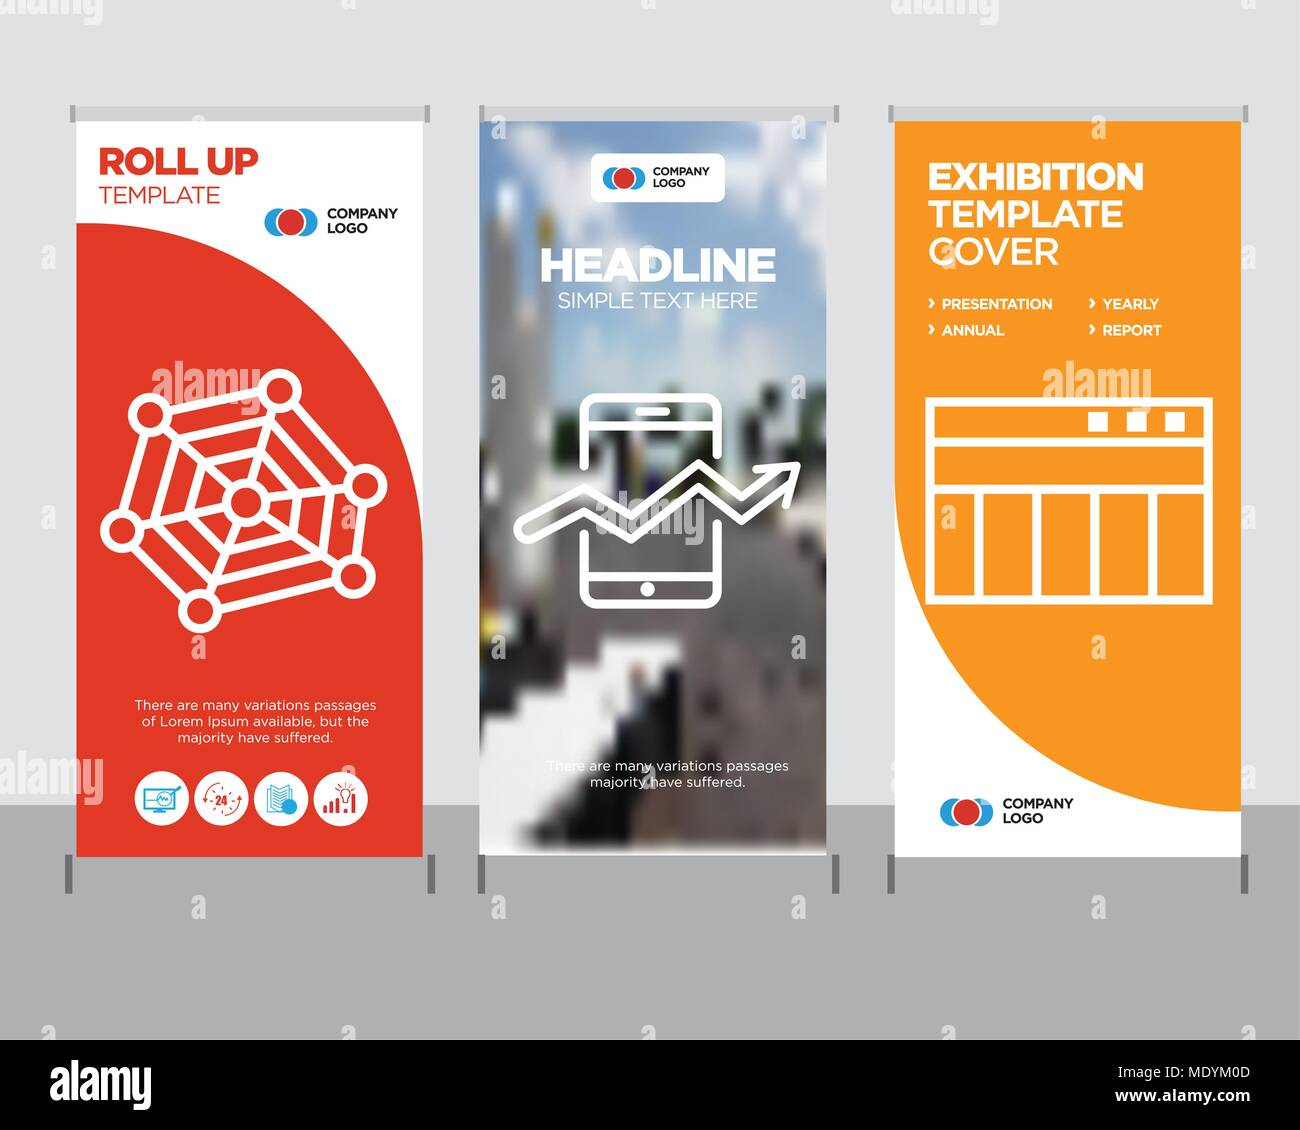 table for data modern business roll up banner design template web